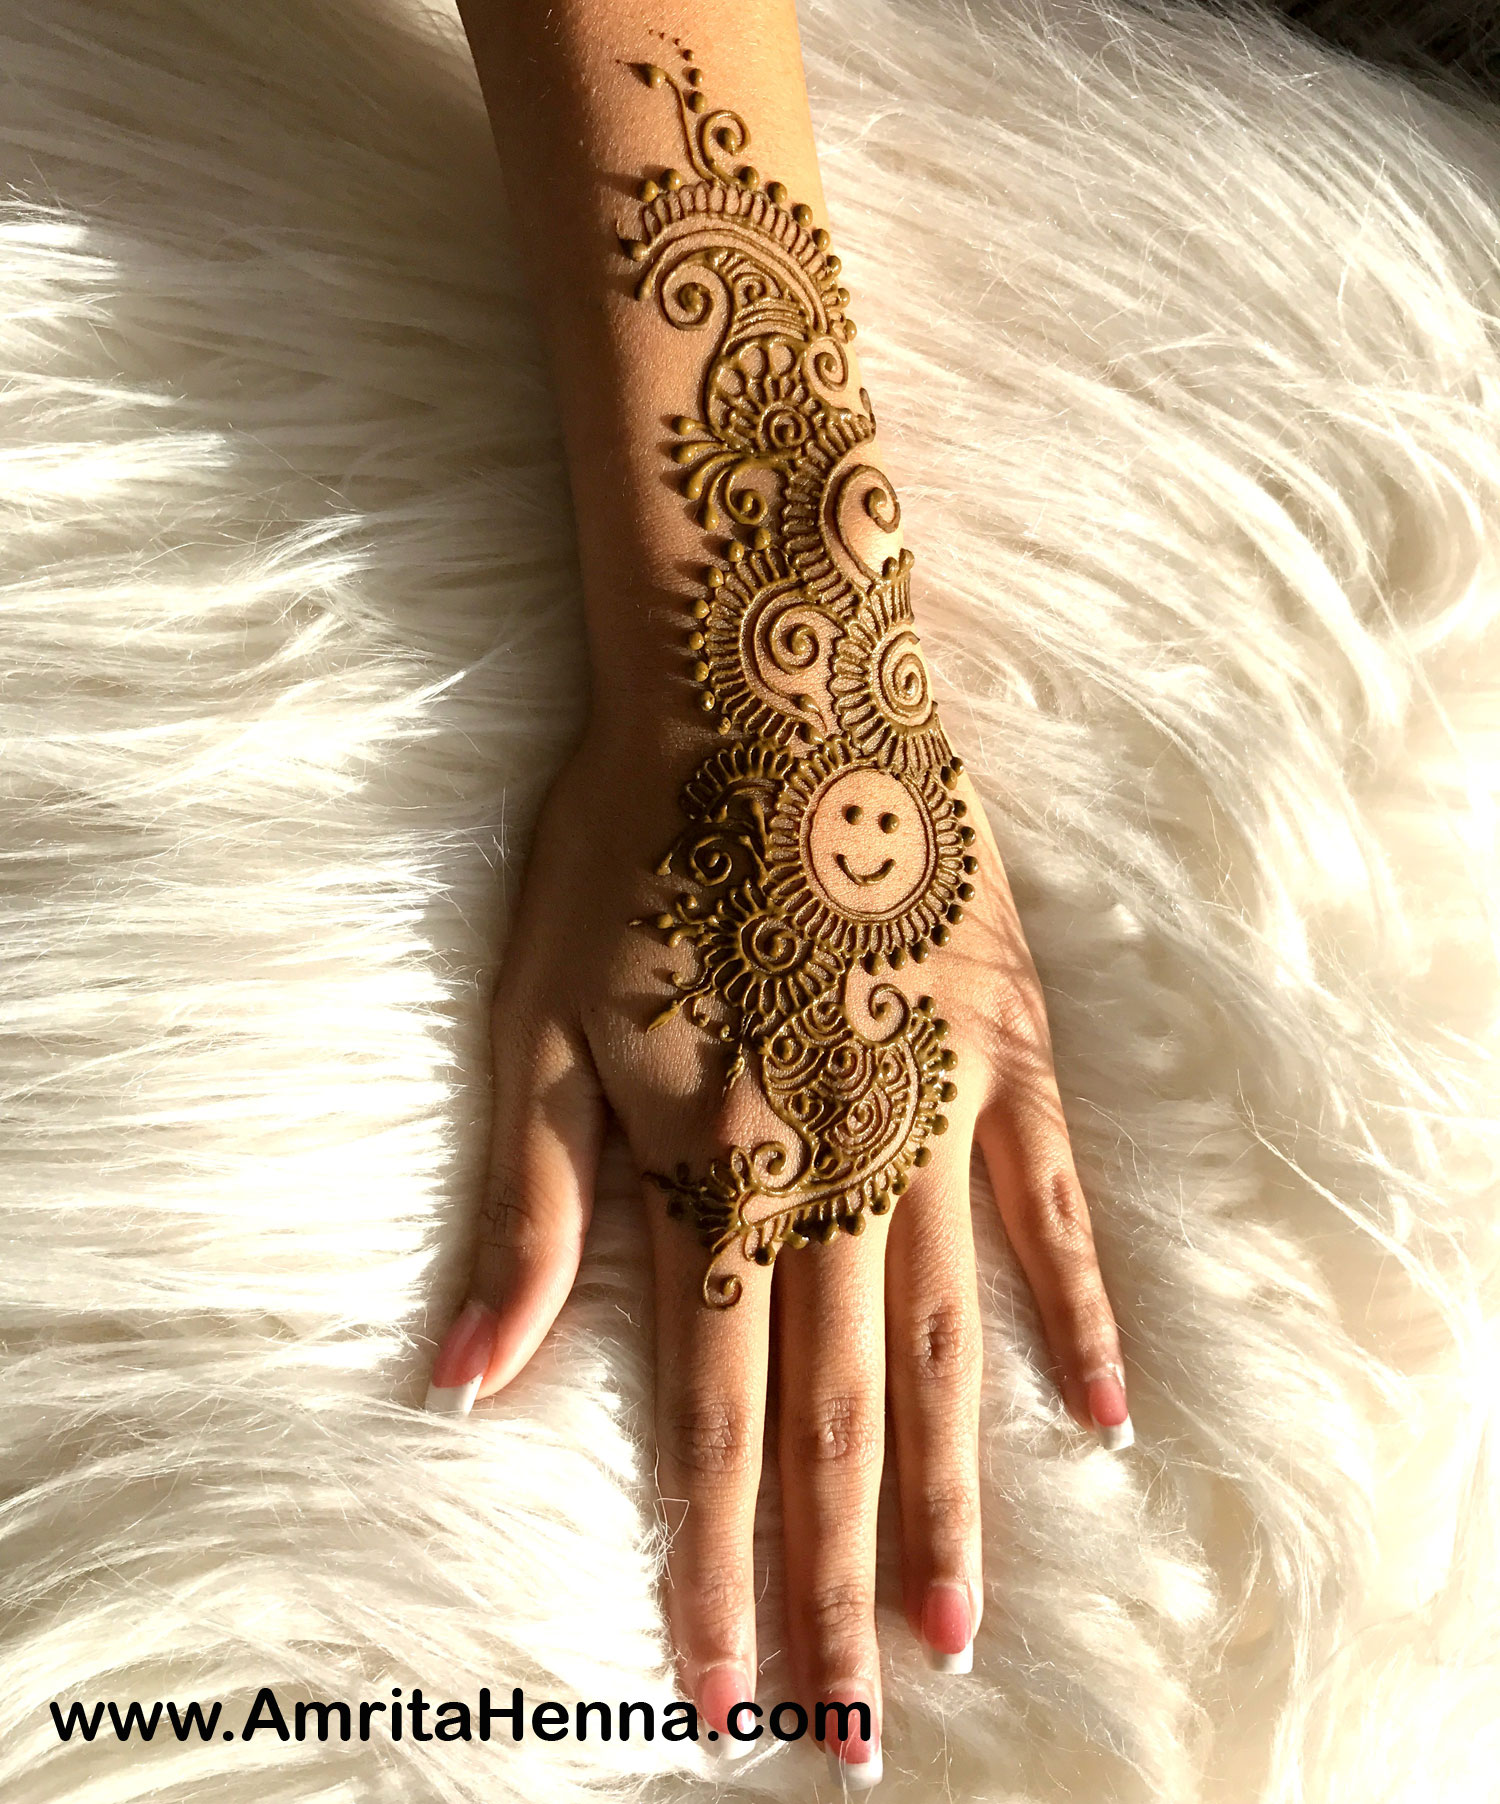 Best Smiley Henna Design - Best Smiley Face Mehndi Designs - Most Popular Smiley Emoticon Henna or Mehendi Design for a Henna Party - Simple Smiley Face Henna Design